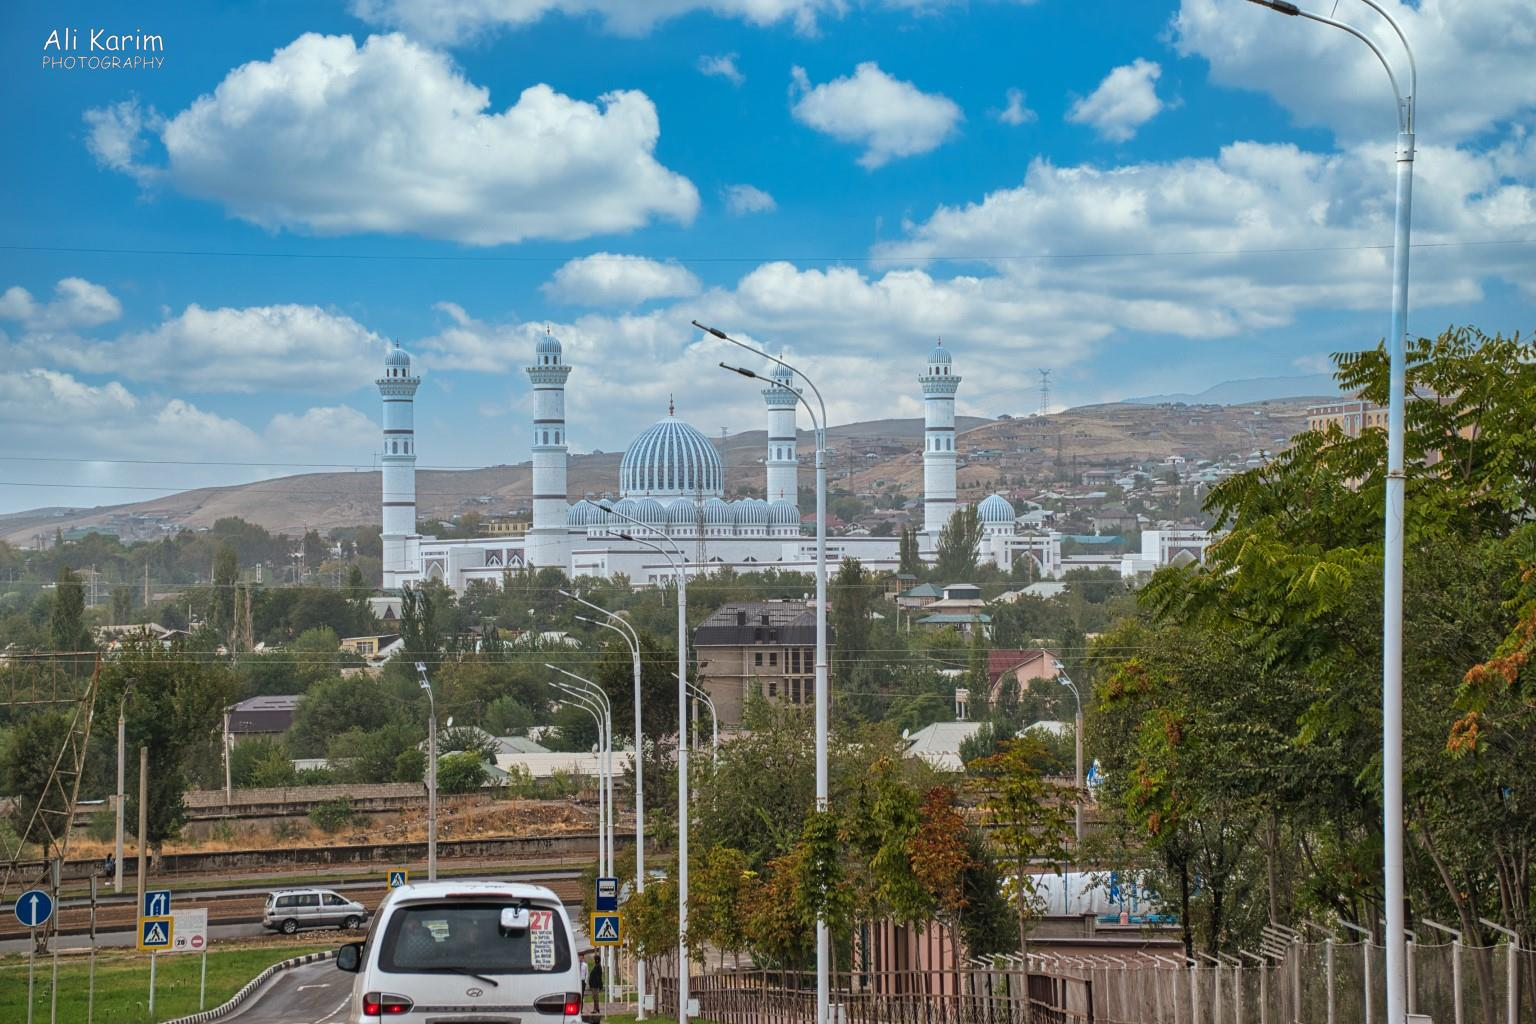 More Dushanbe, Tajikistan City scape with the new Omani mosque we had seen the previous night, in full glory